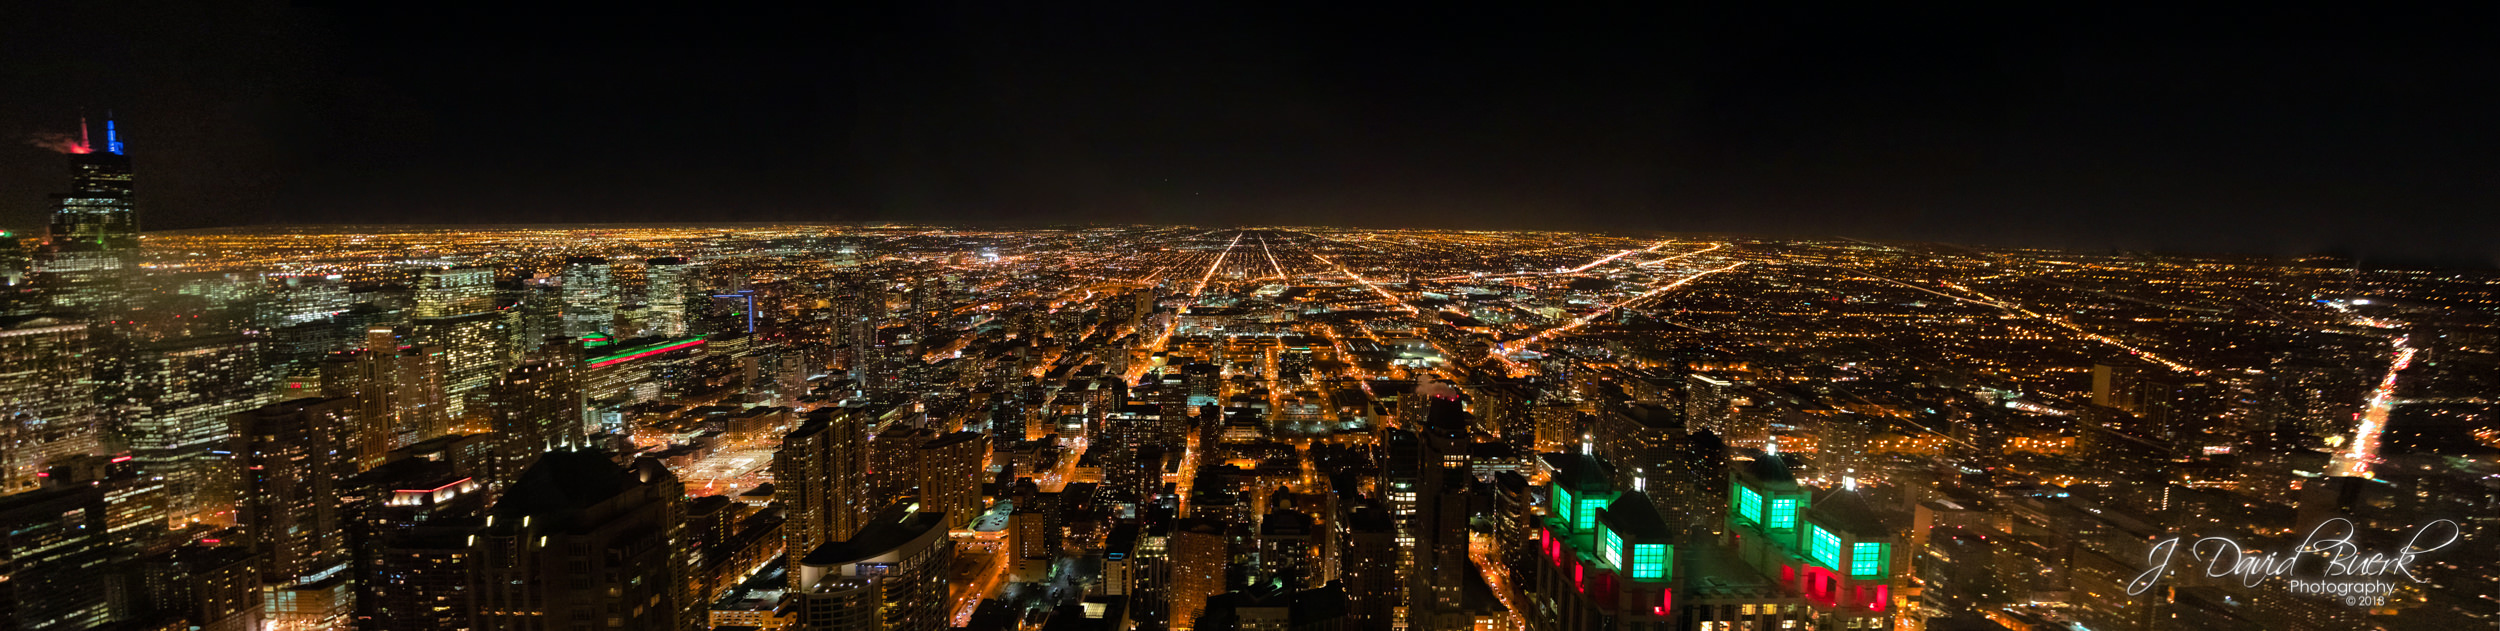 The Chicago, Illinois cityscape skyline at night as seen from atop 875 North Michigan Avenue, colloquially known as the John Hancock Center. Willis Tower (formerly known as Sears Tower) can be seen on the far left lit in red and blue uplighting.